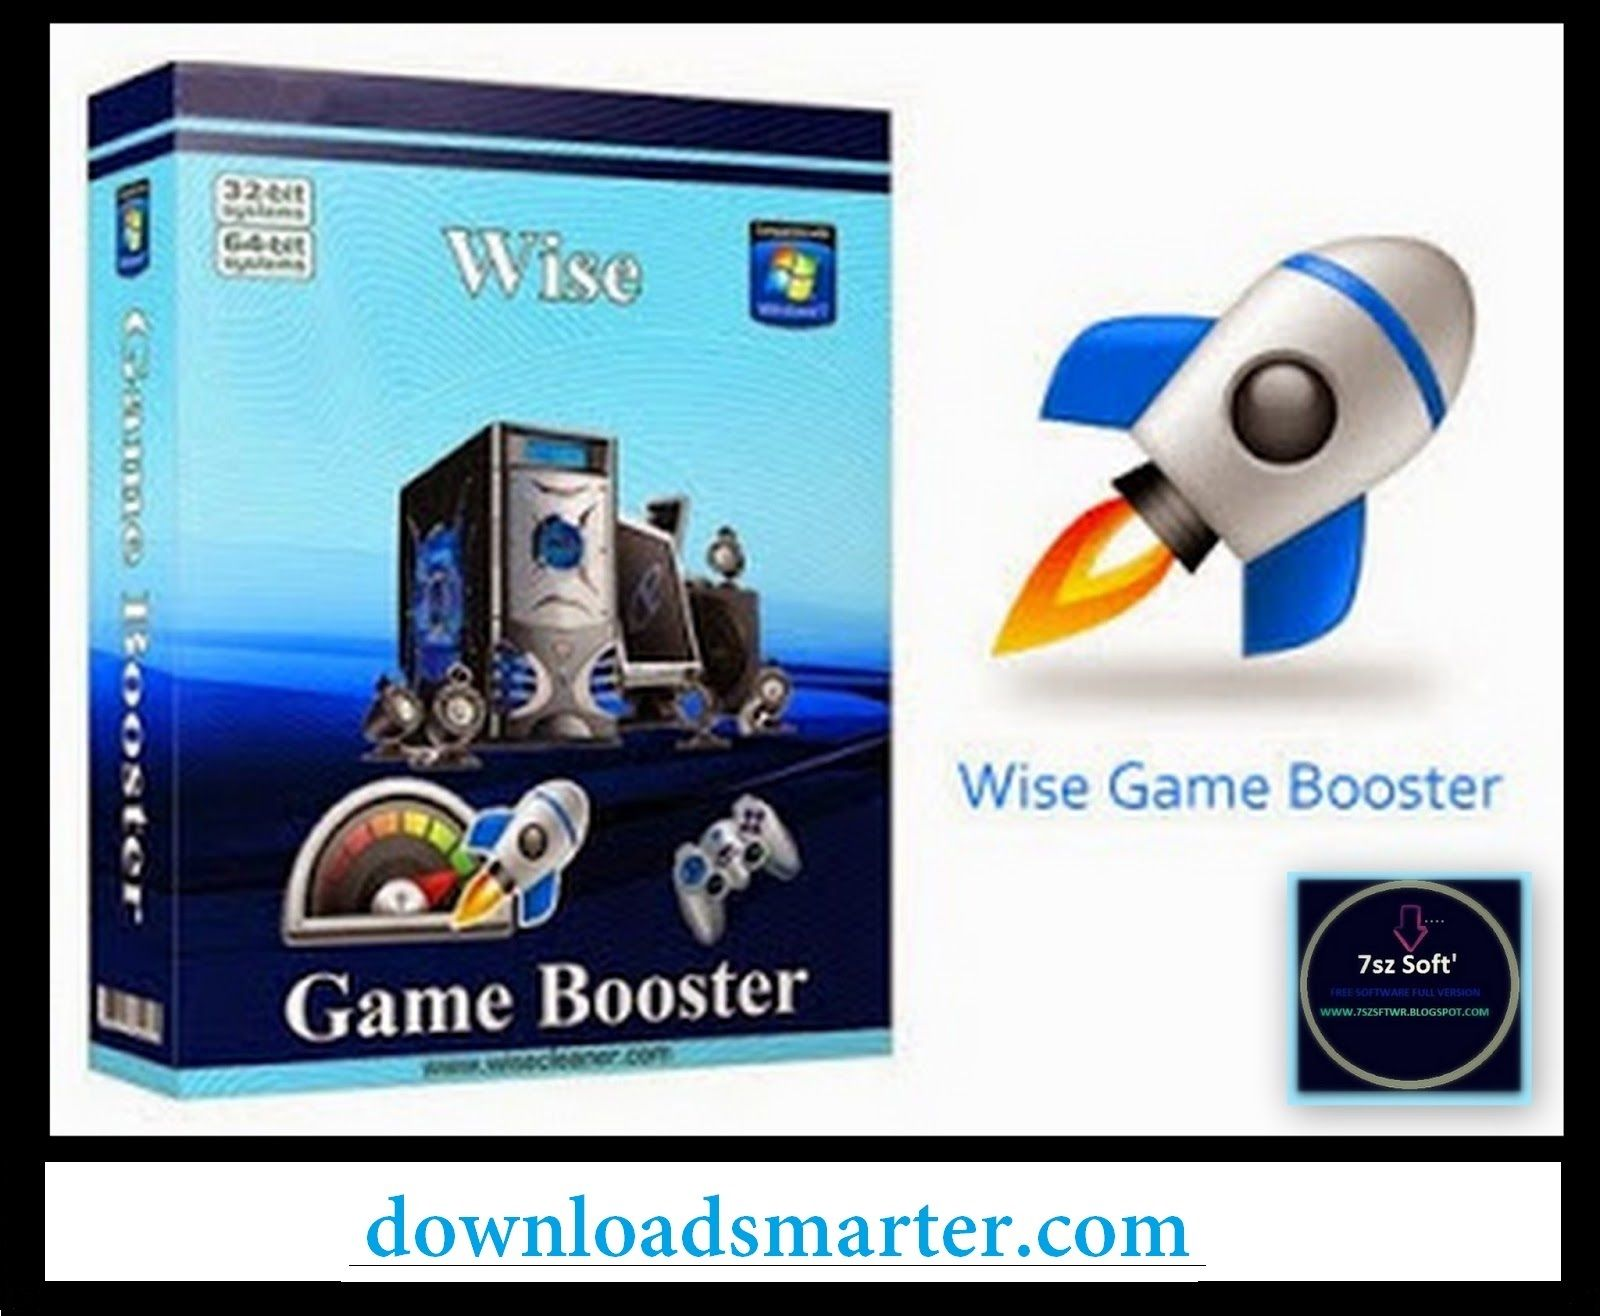 Anti Porn Tueagles pinandroid smarter world on wise game booster free for